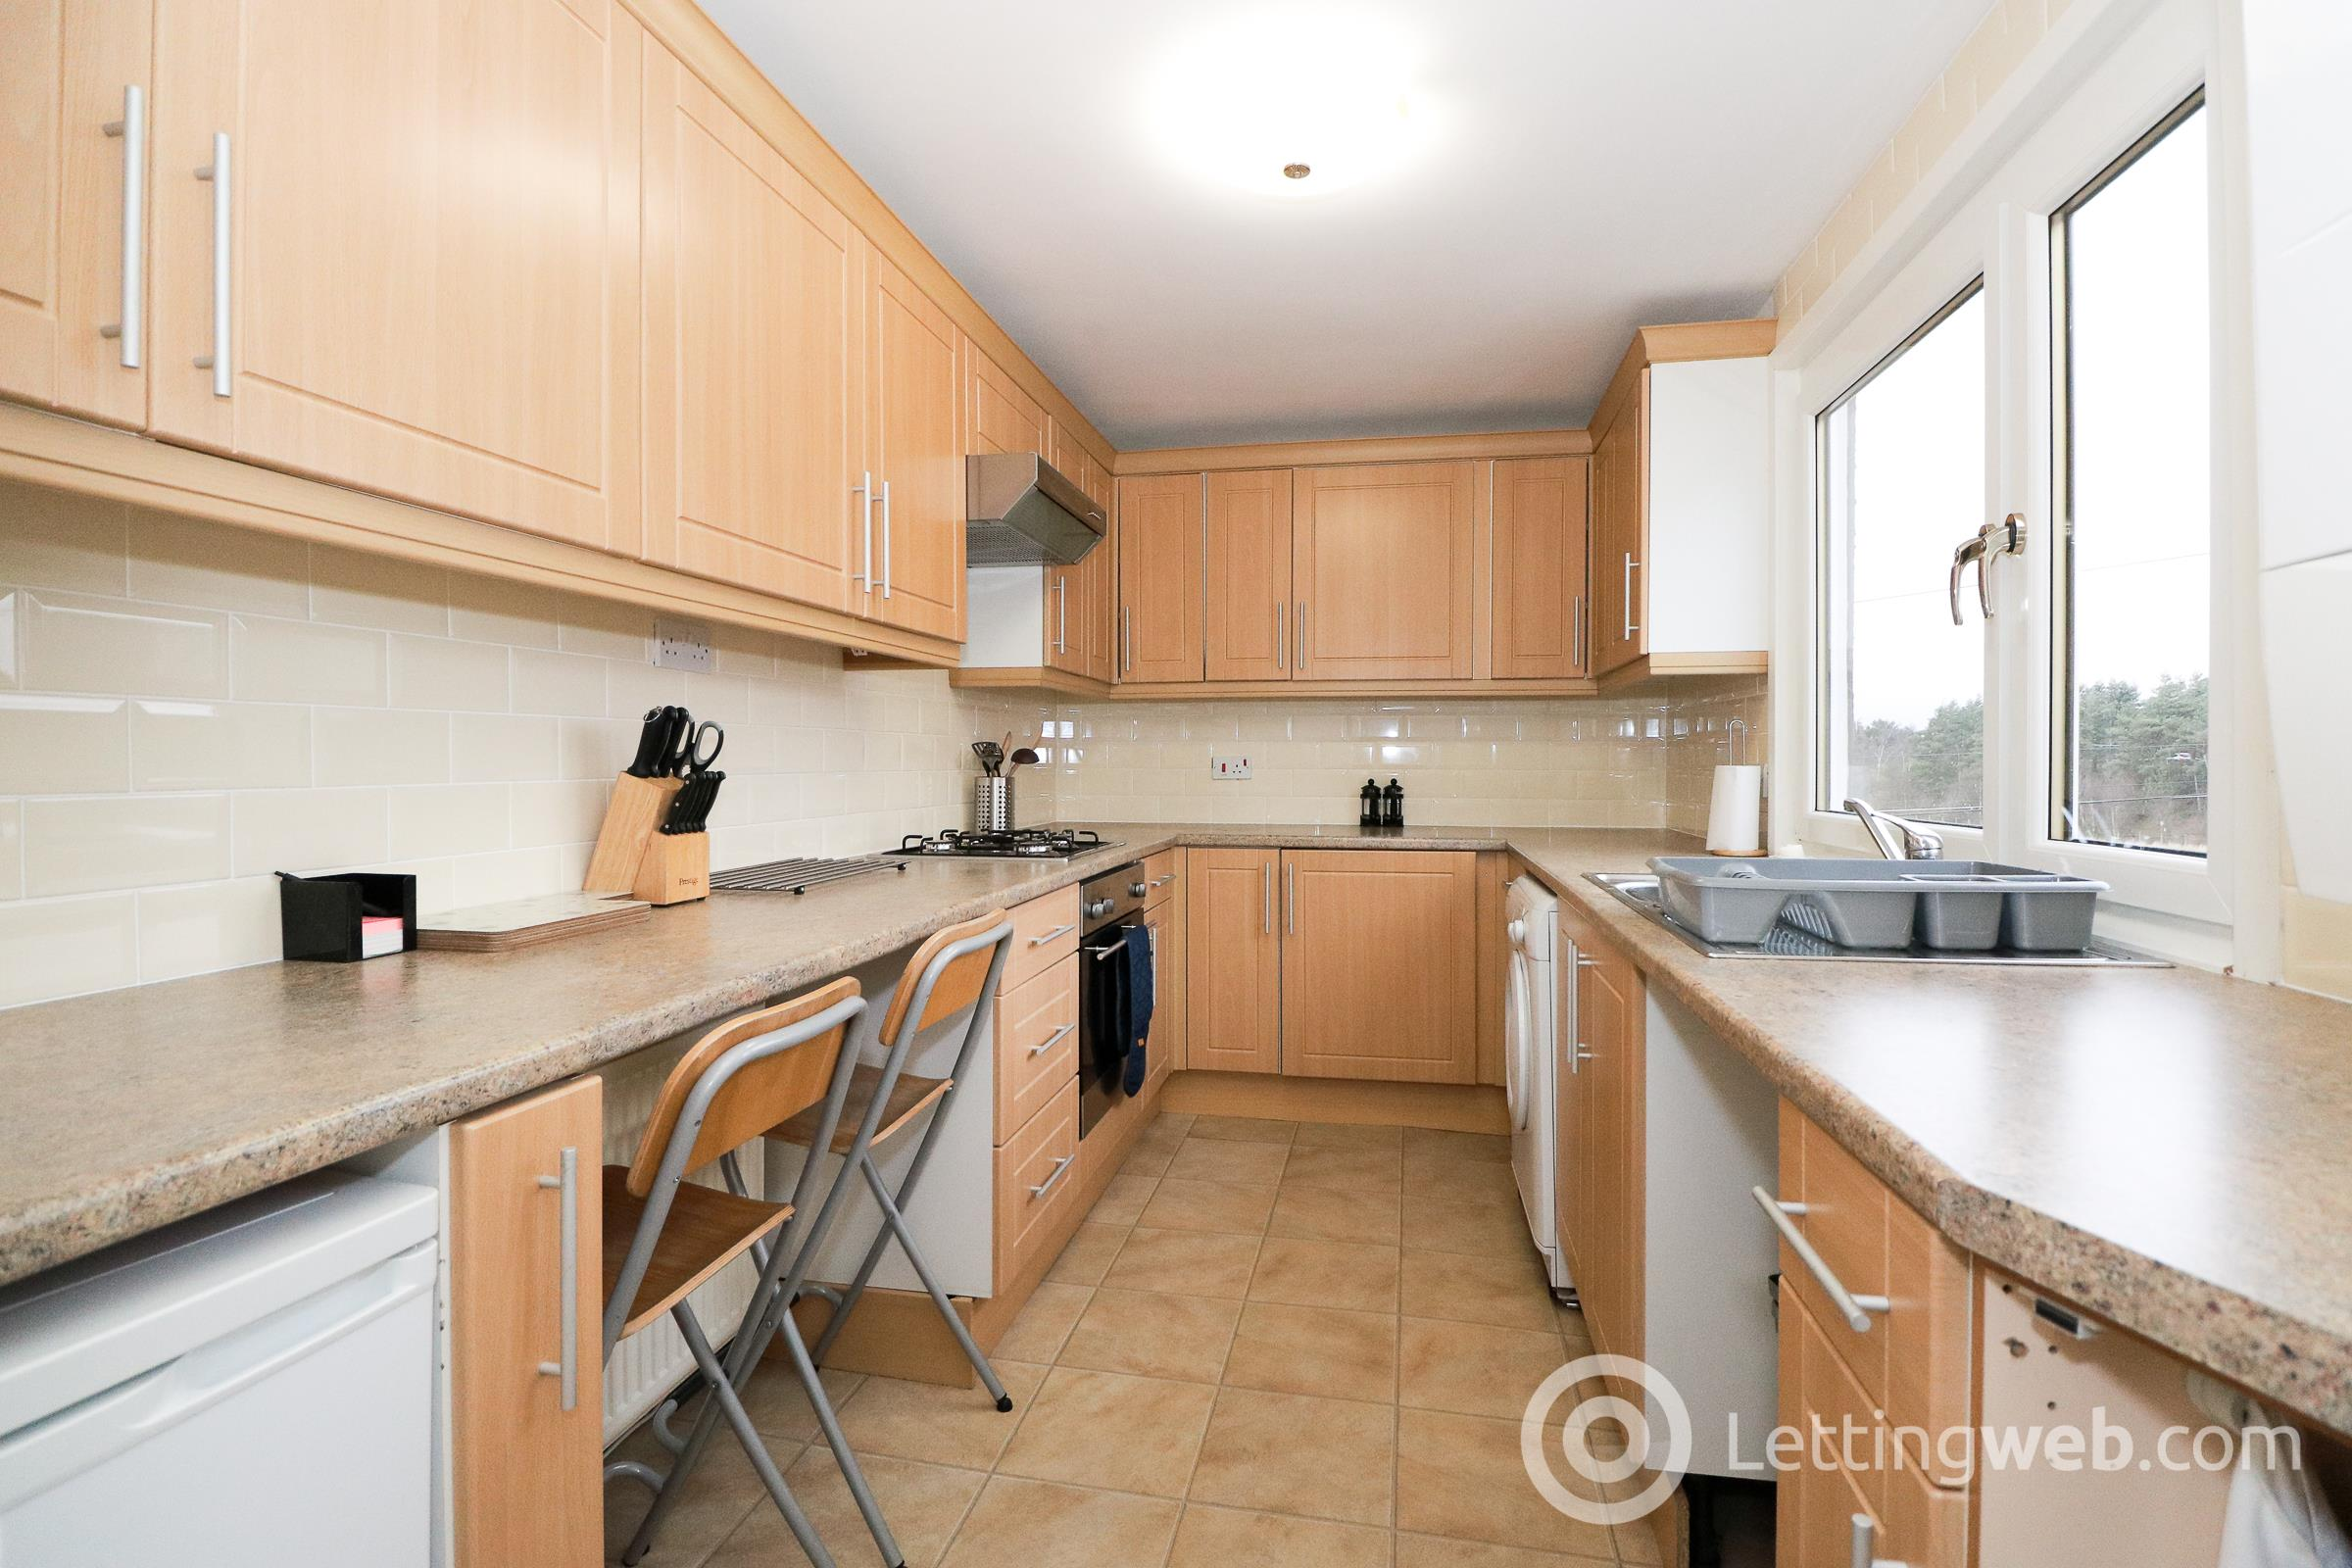 Bedroom Property For Rent In Kirkcaldy